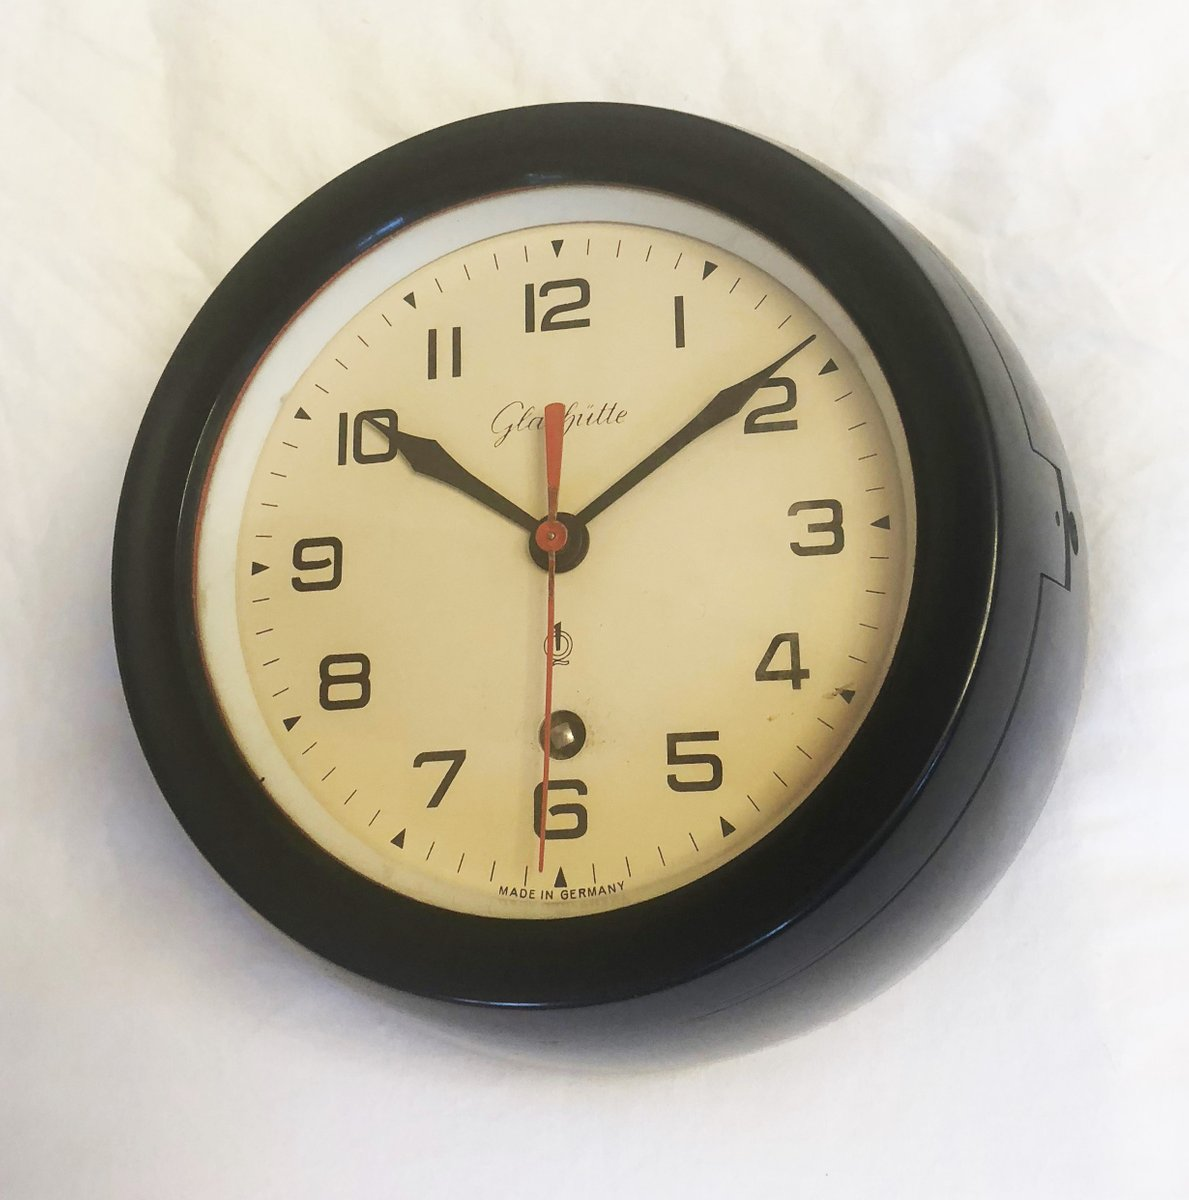 Bakelite Wall Clock from Glashütte, 1960s for sale at Pamono